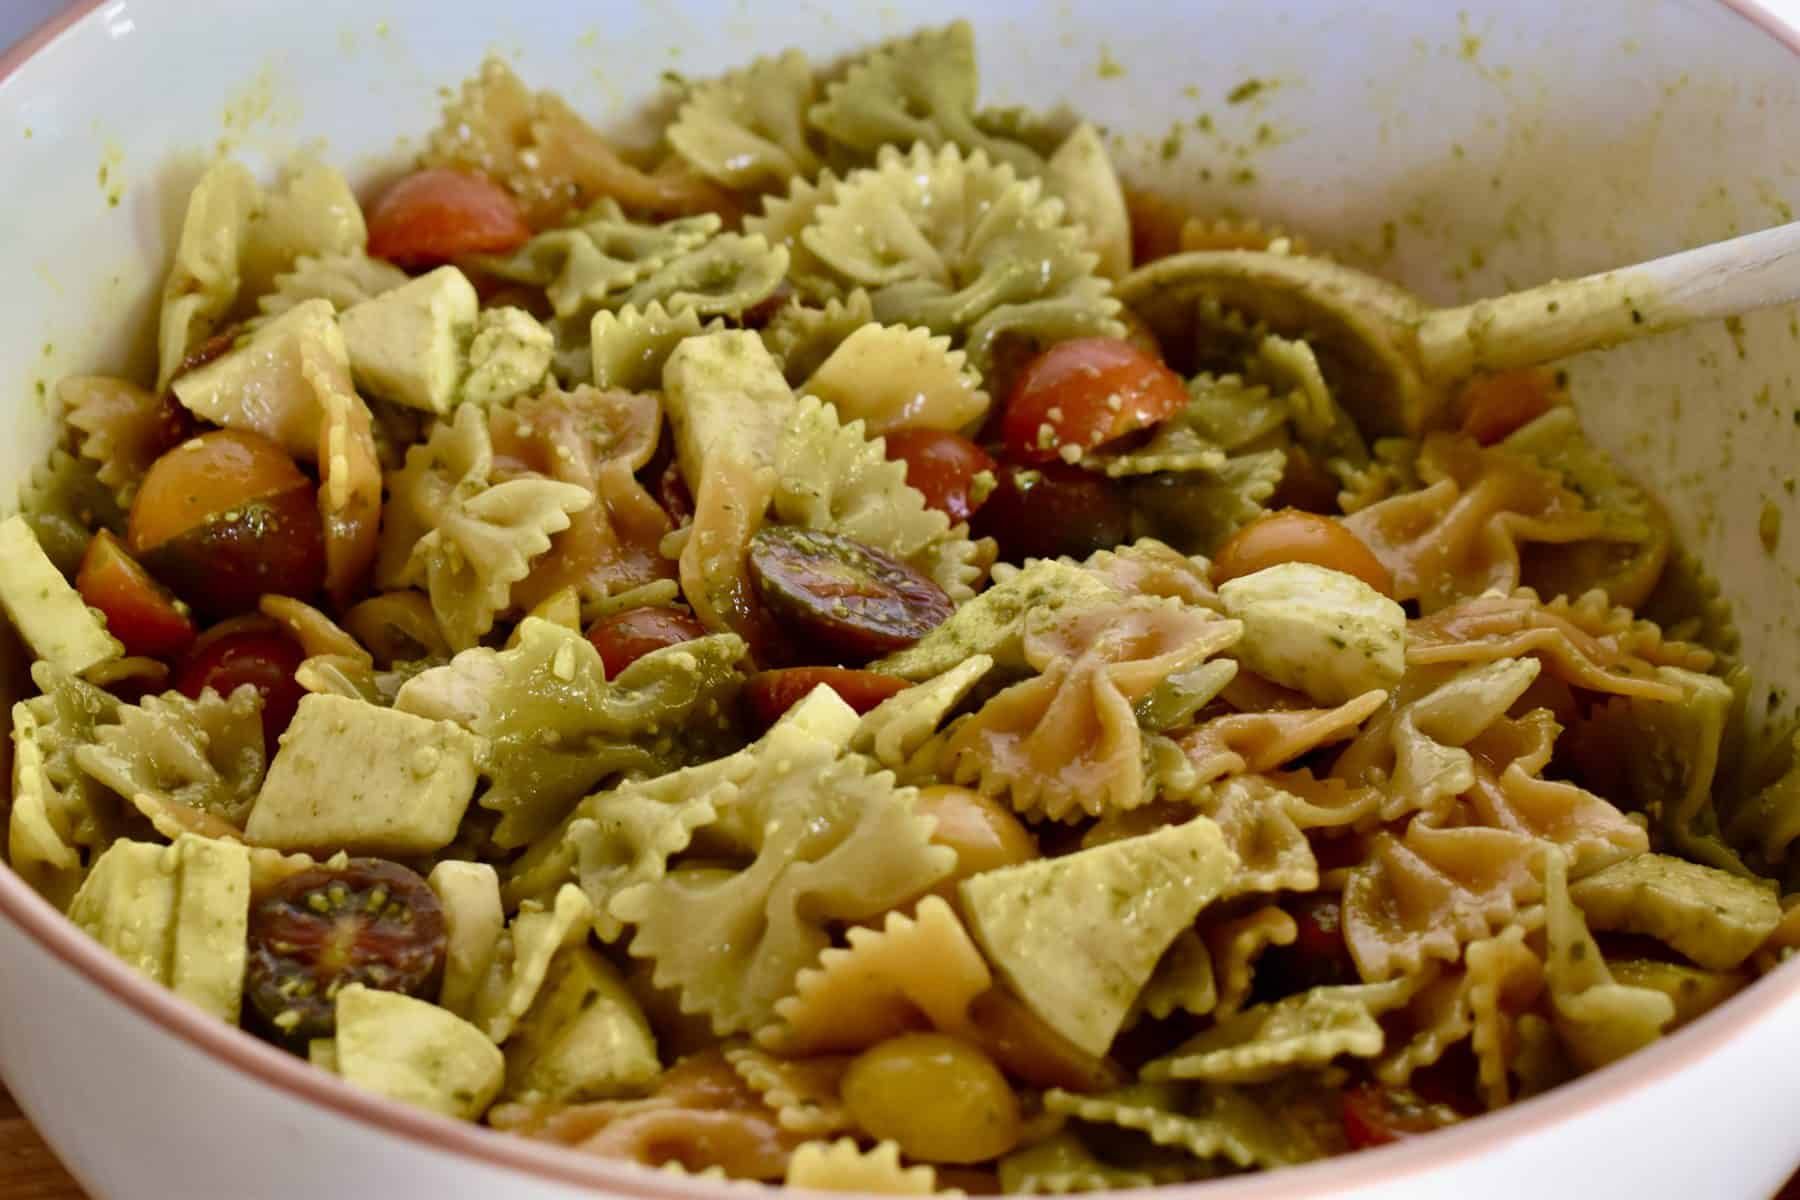 Pesto Pasta Salad tossed together in a large mixing bowl with a wooden spoon.